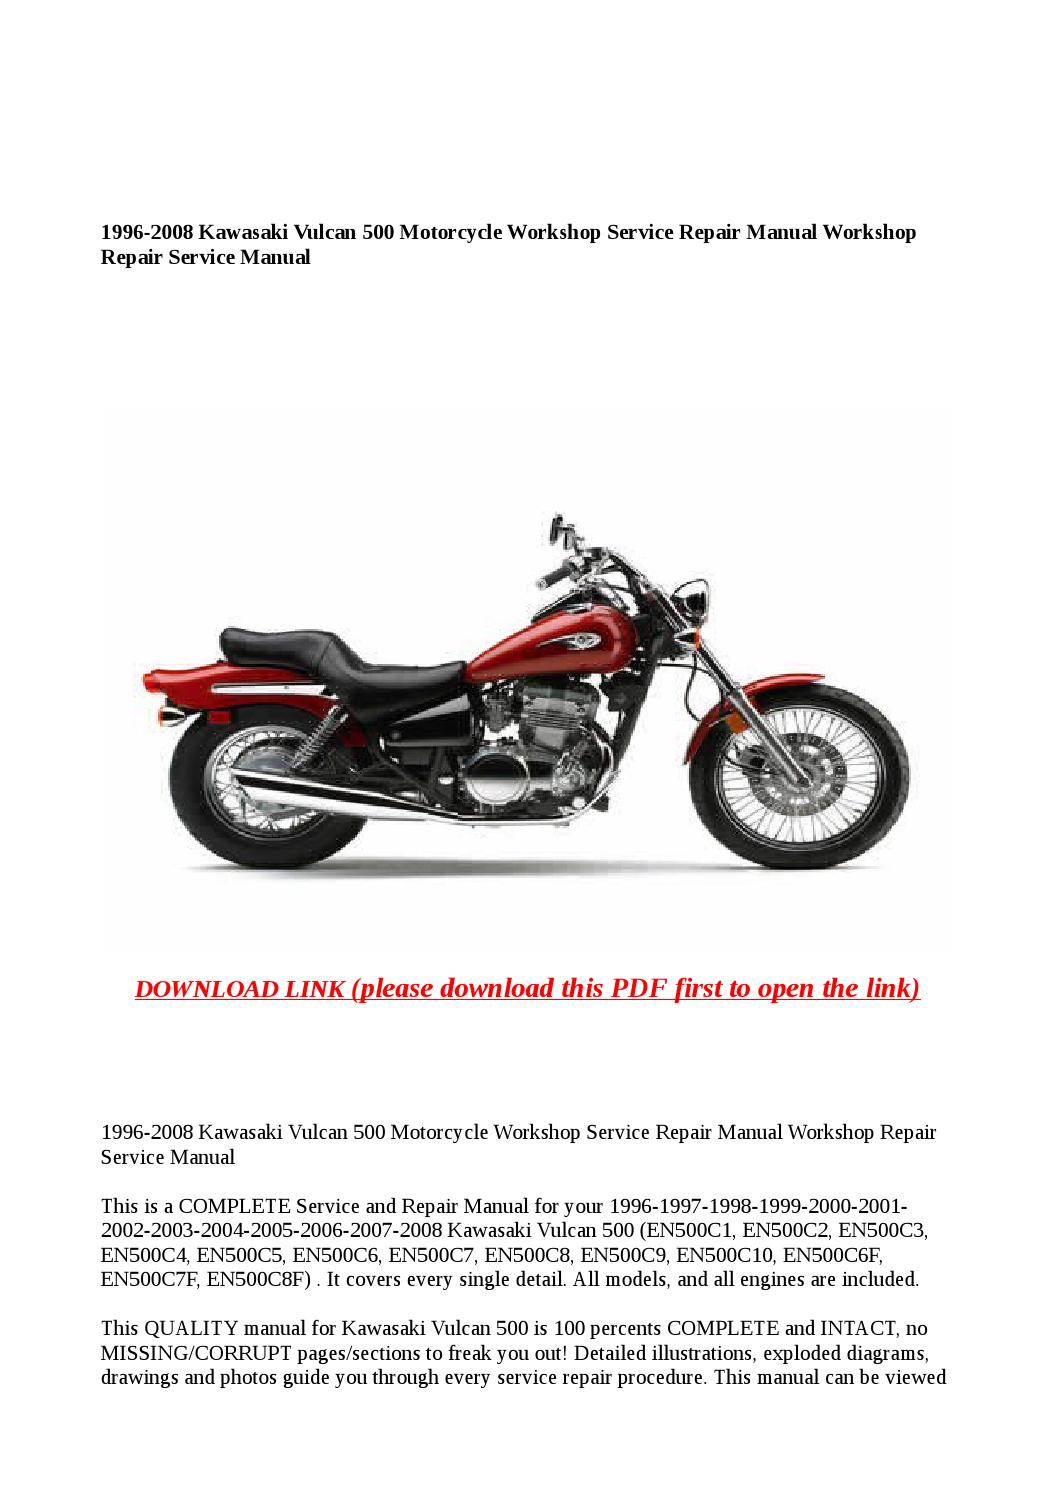 1996 2008 kawasaki vulcan 500 motorcycle workshop service repair manual  workshop repair service manu by buhbu - issuu